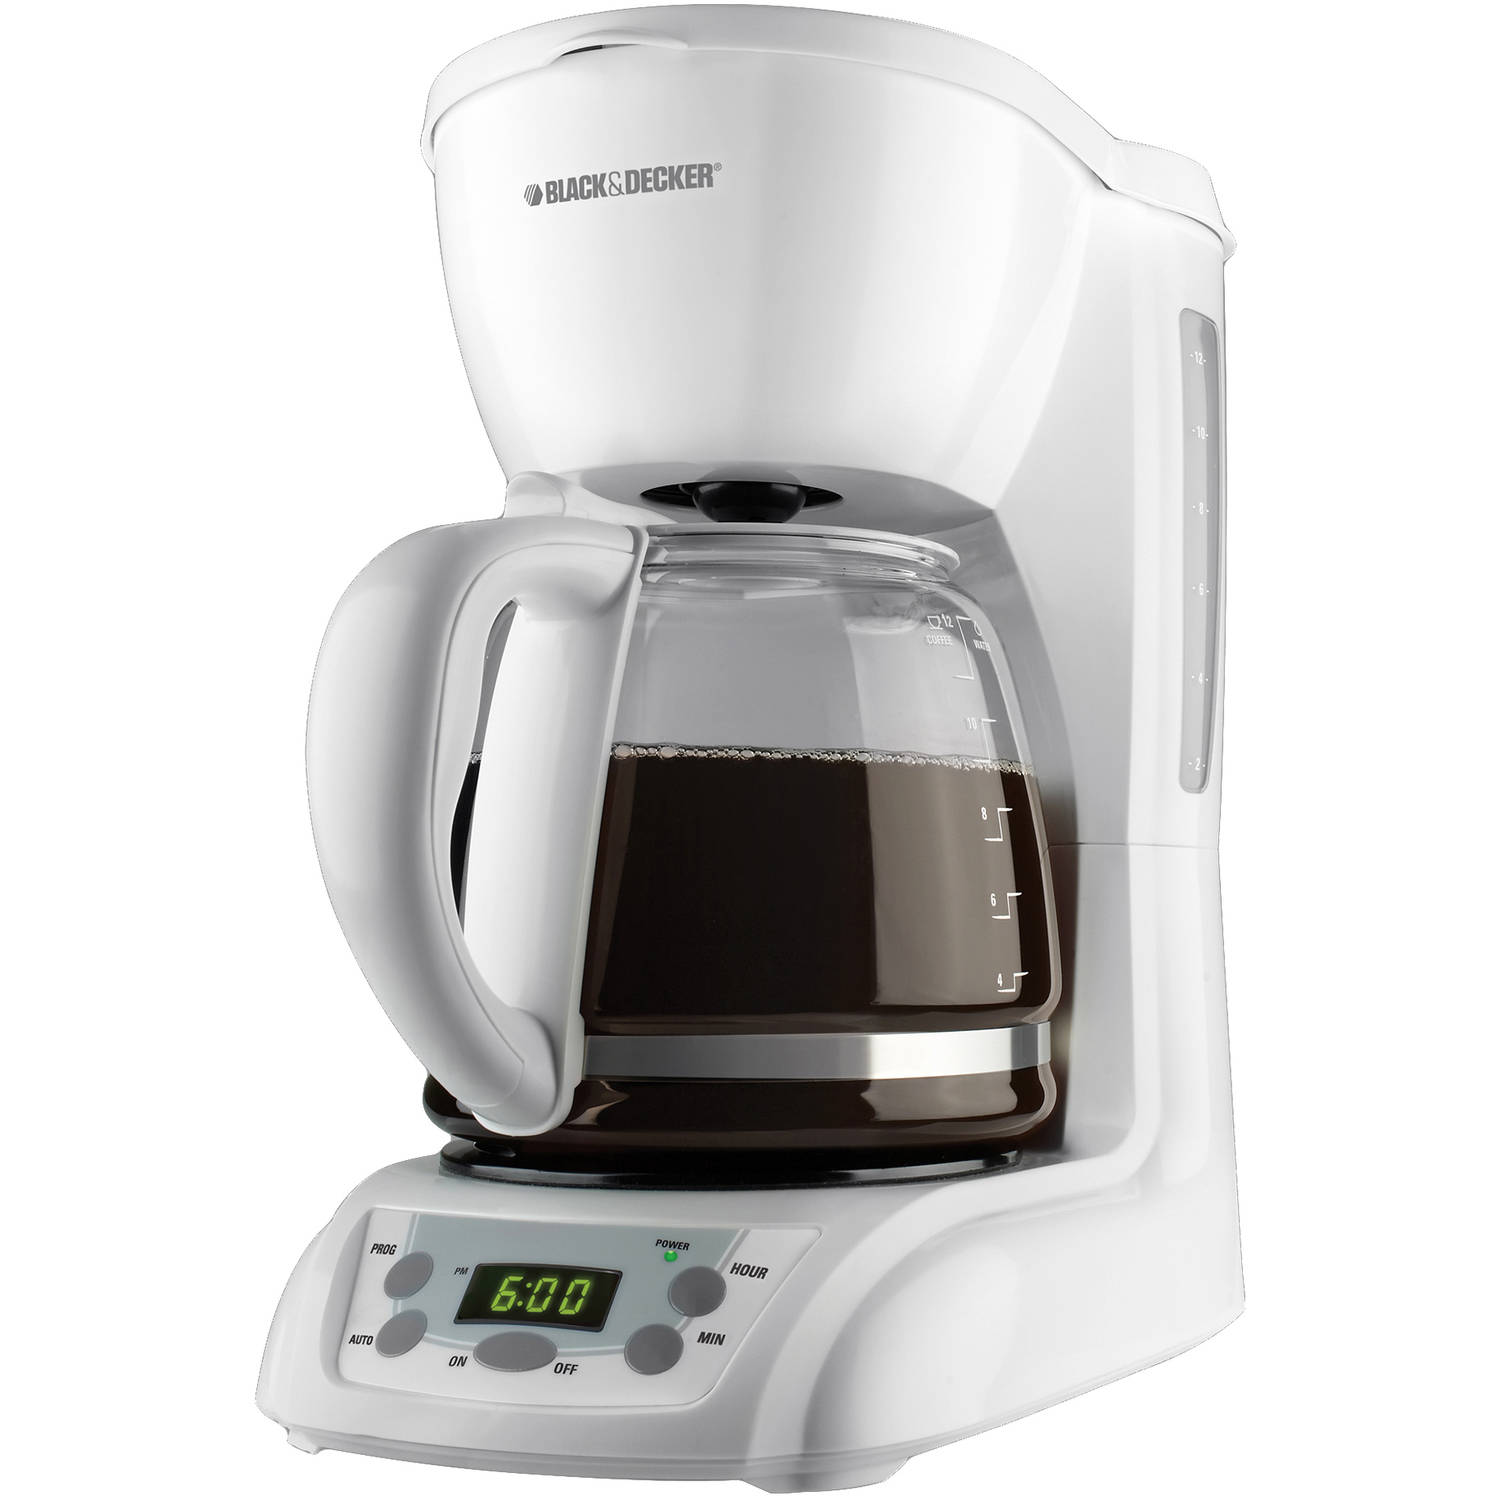 BLACK+DECKER 12-Cup Programmable Coffeemaker, DLX1050W